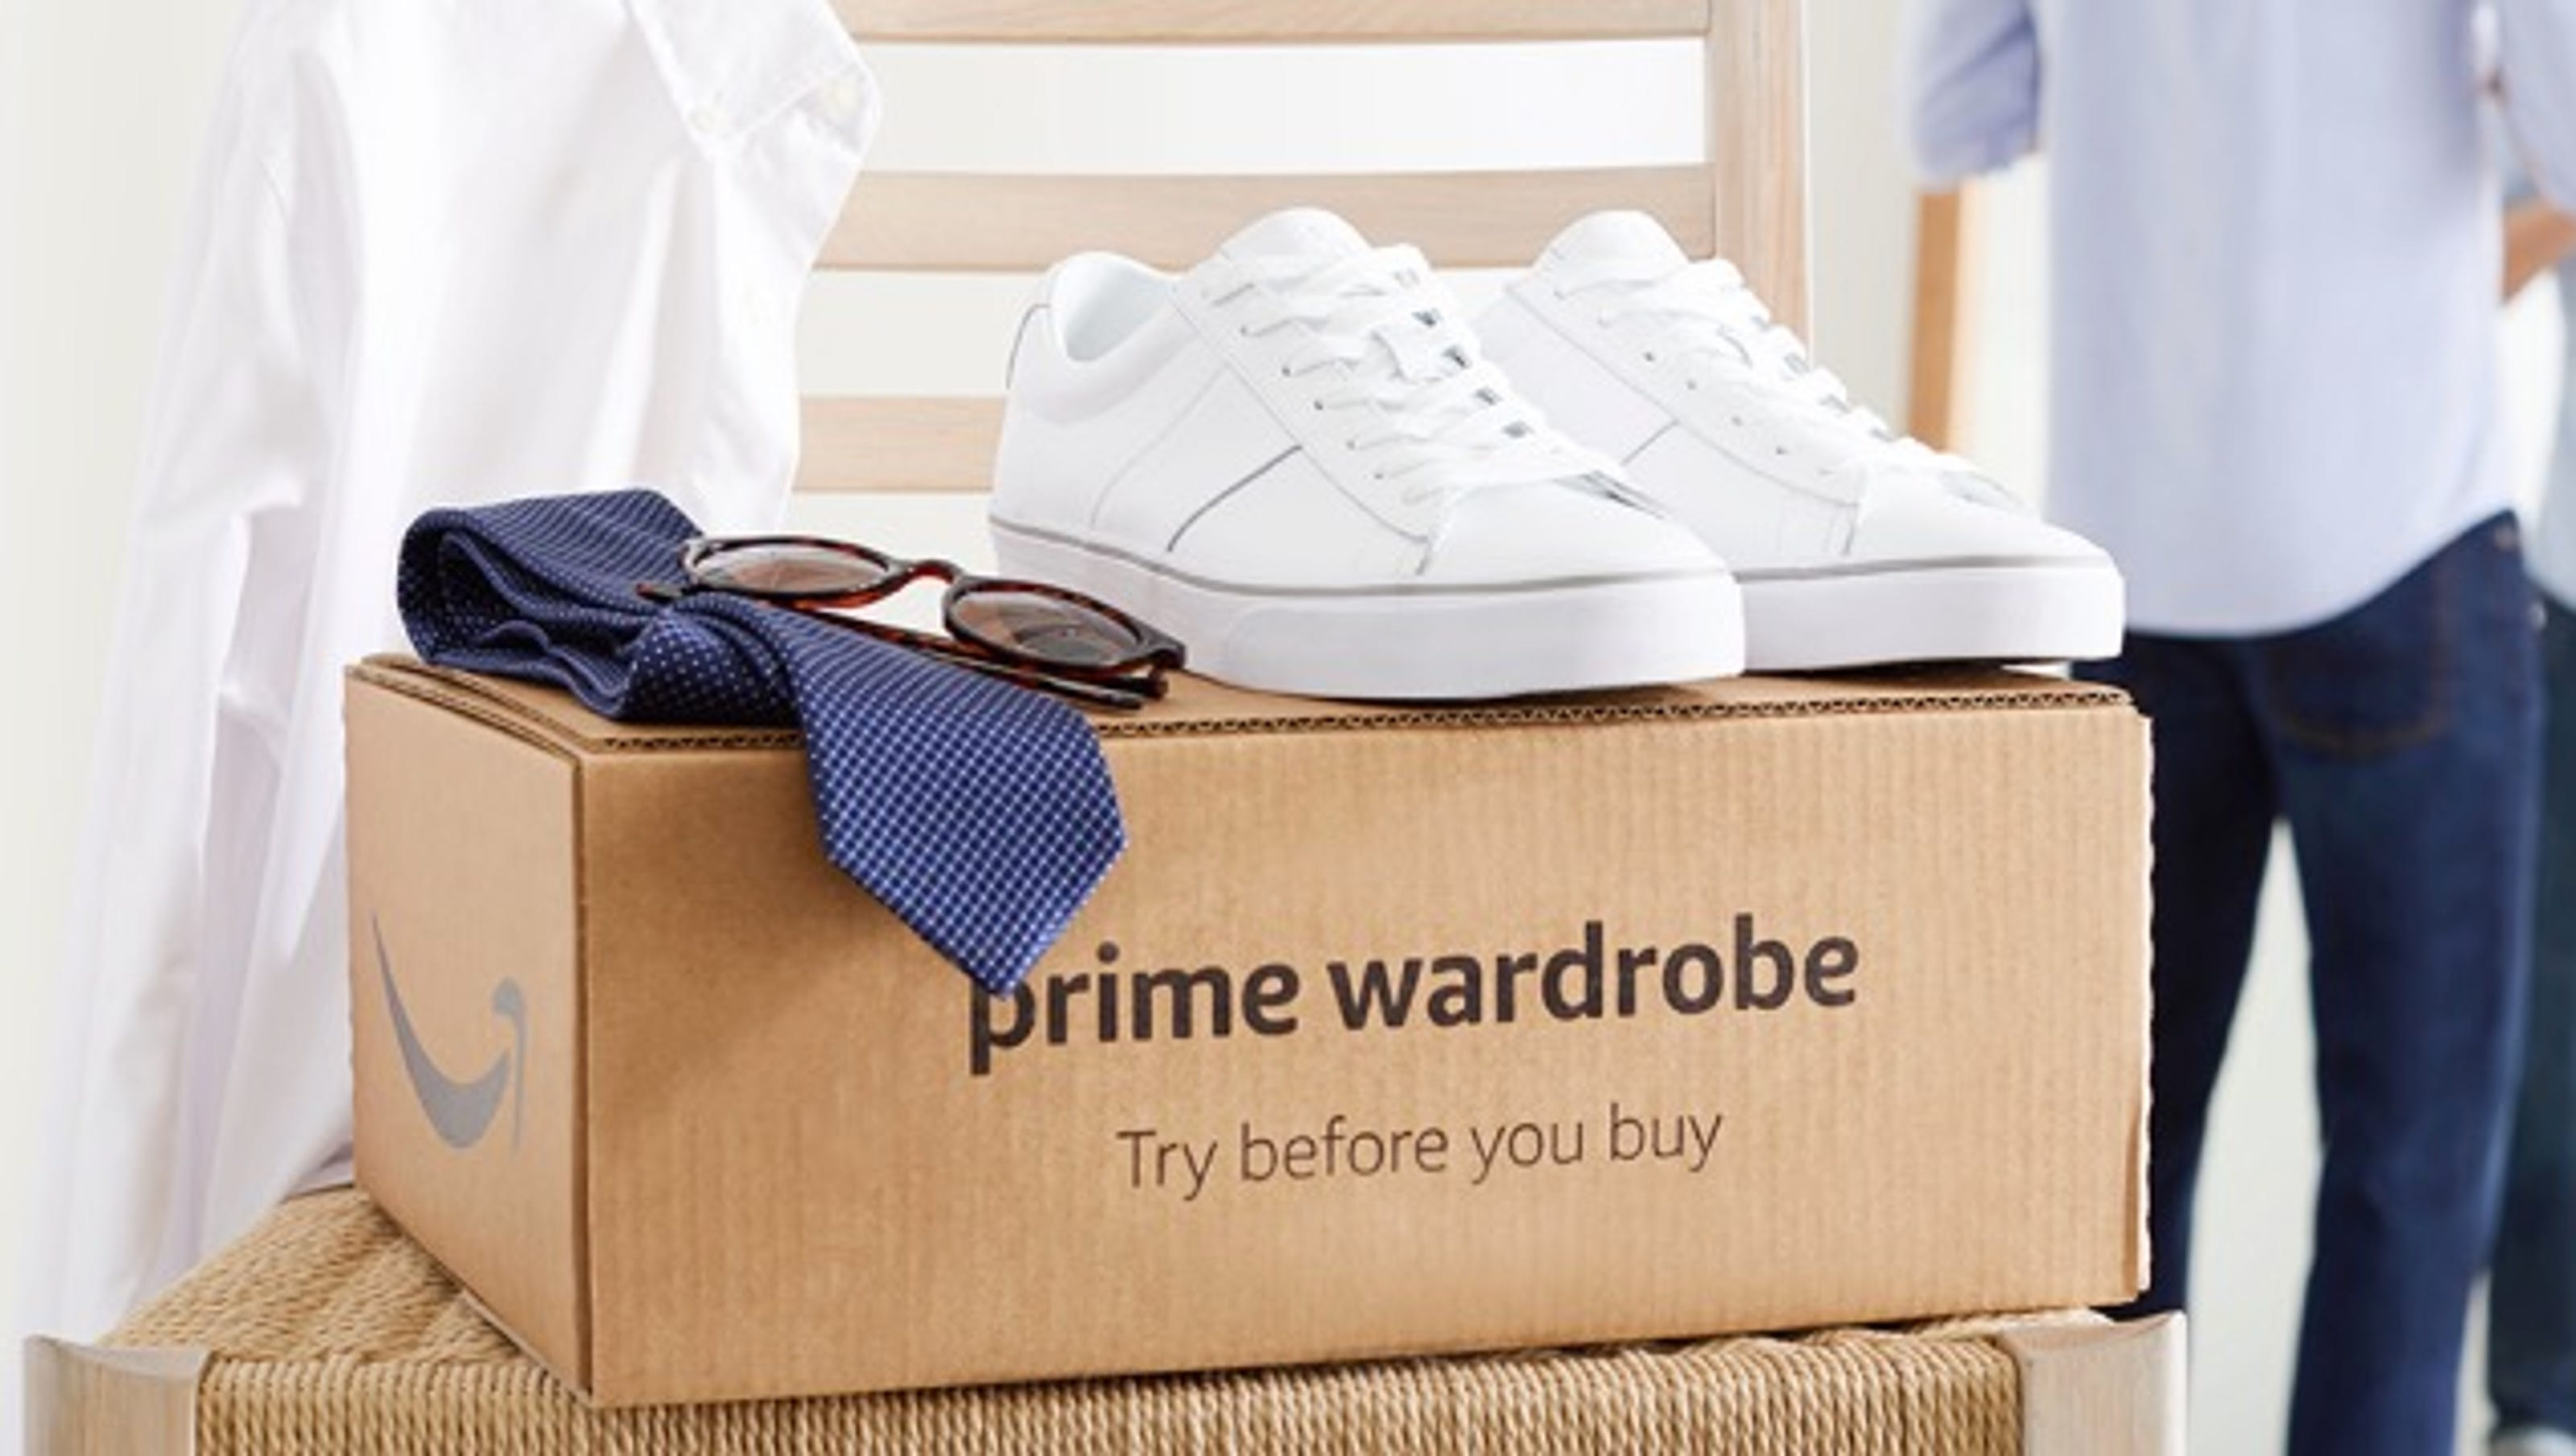 In U.K., Amazon Fashion Launches Prime Wardrobe, its 'Try Before You Buy' Service